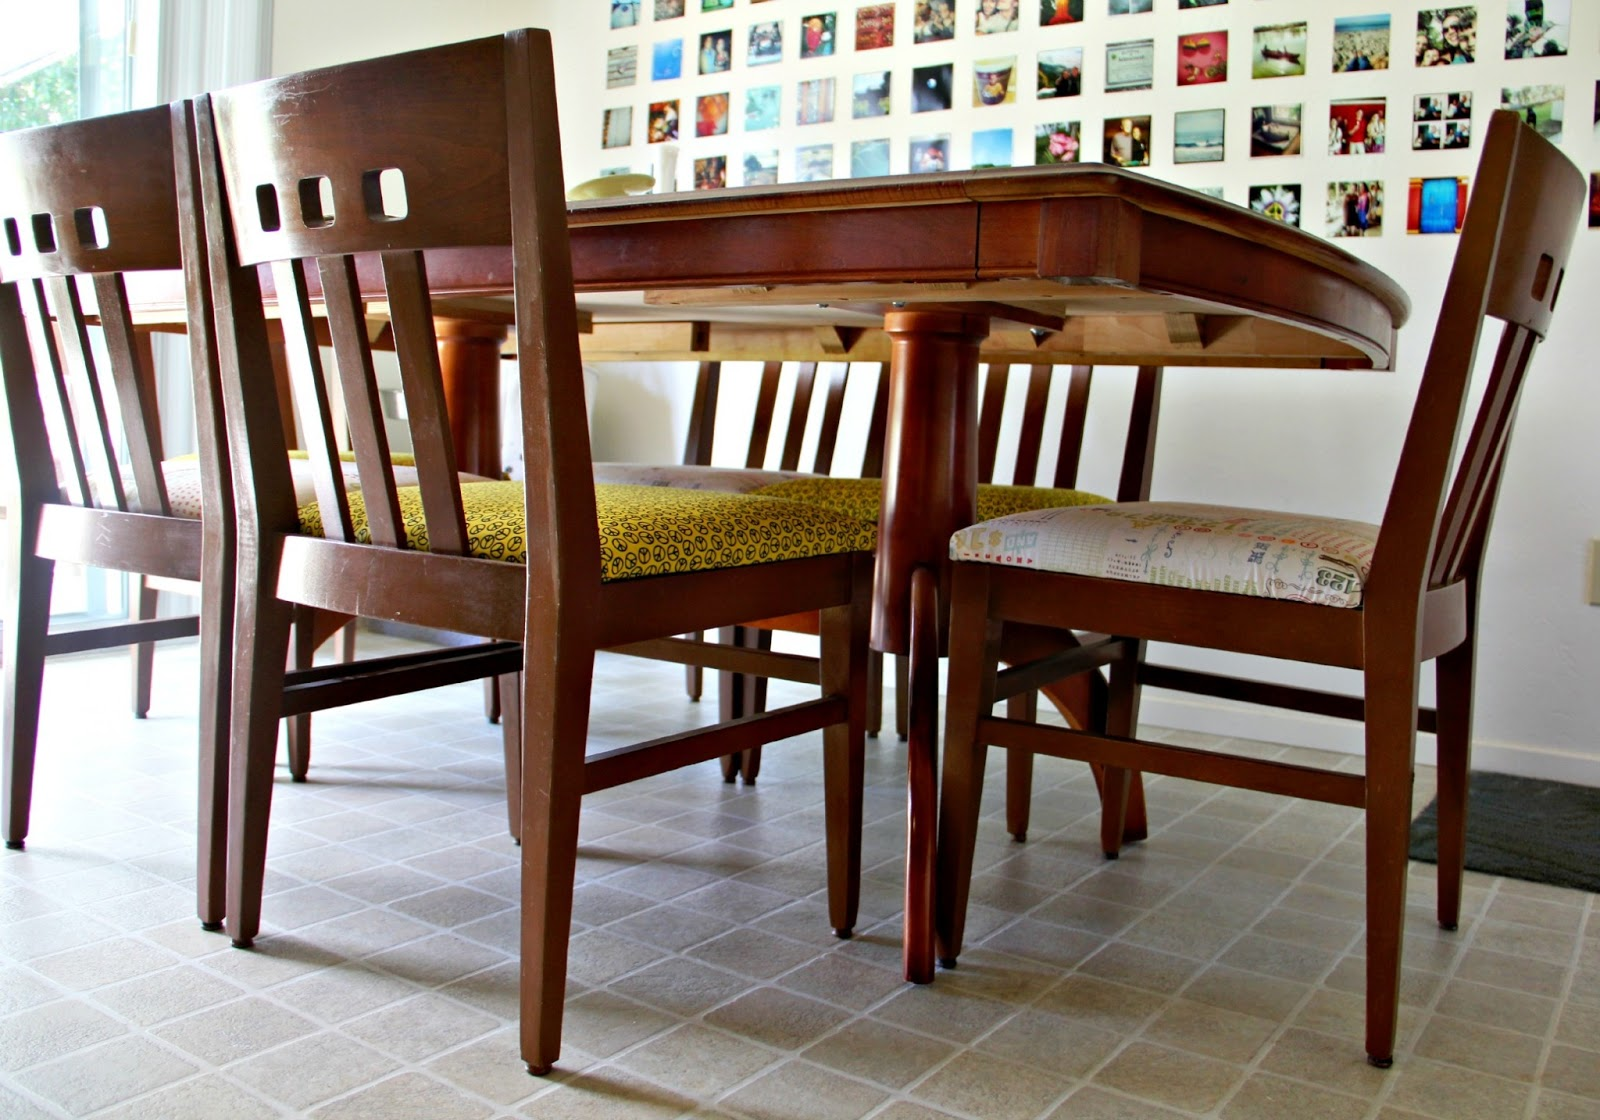 los franich craigslist dining chairs reupholstery. Black Bedroom Furniture Sets. Home Design Ideas